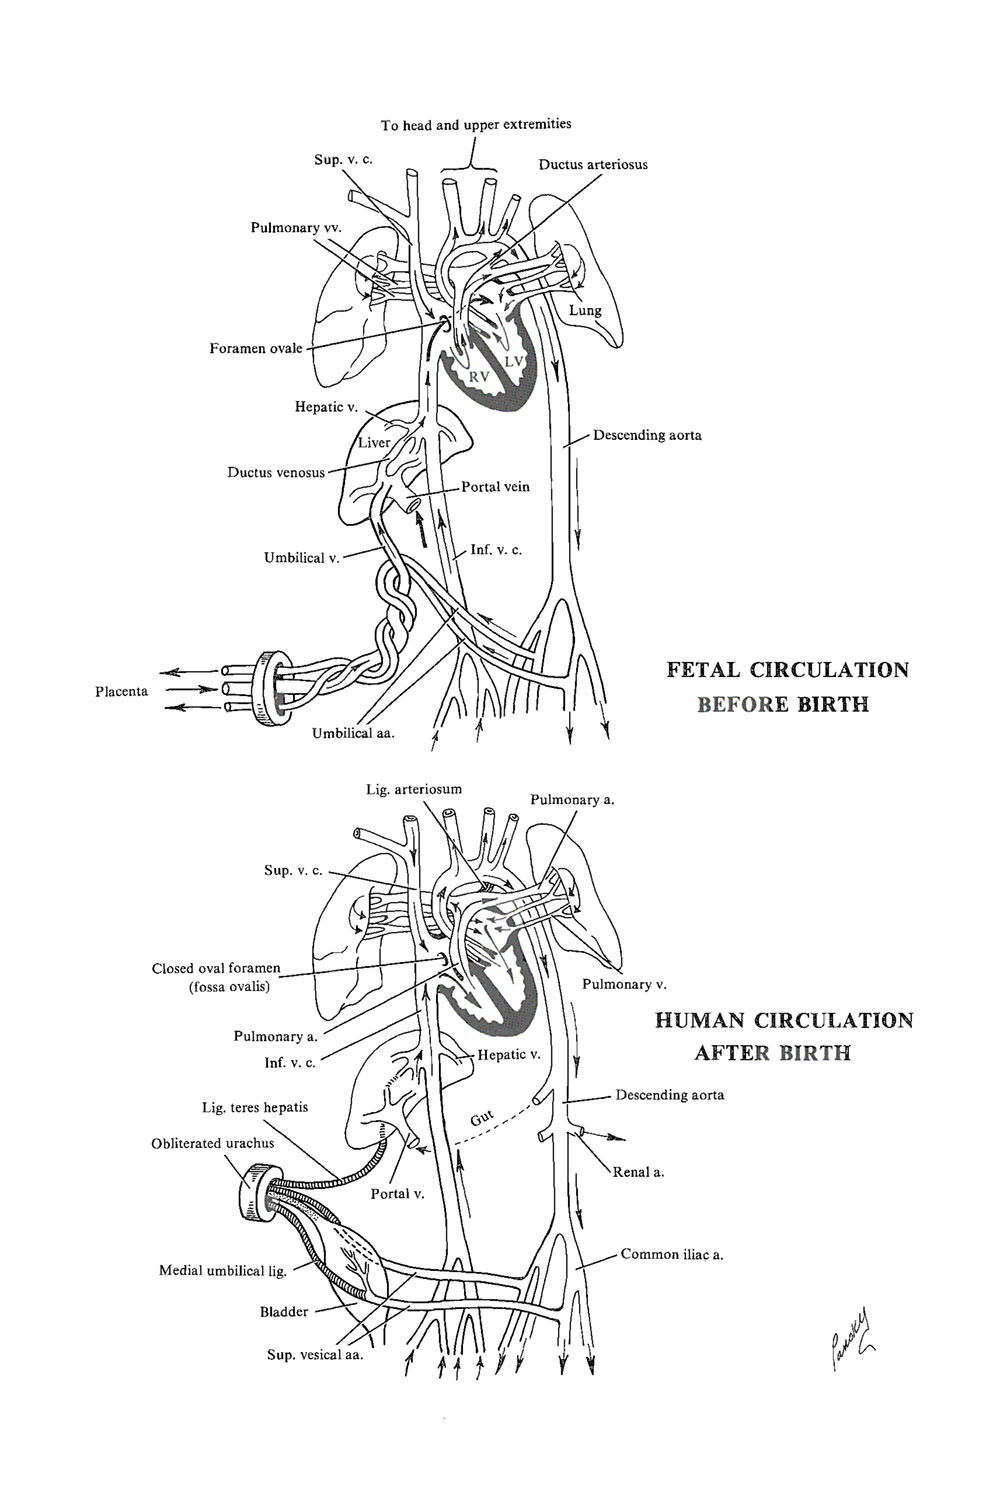 the circulatory system  before and after birth: image #1